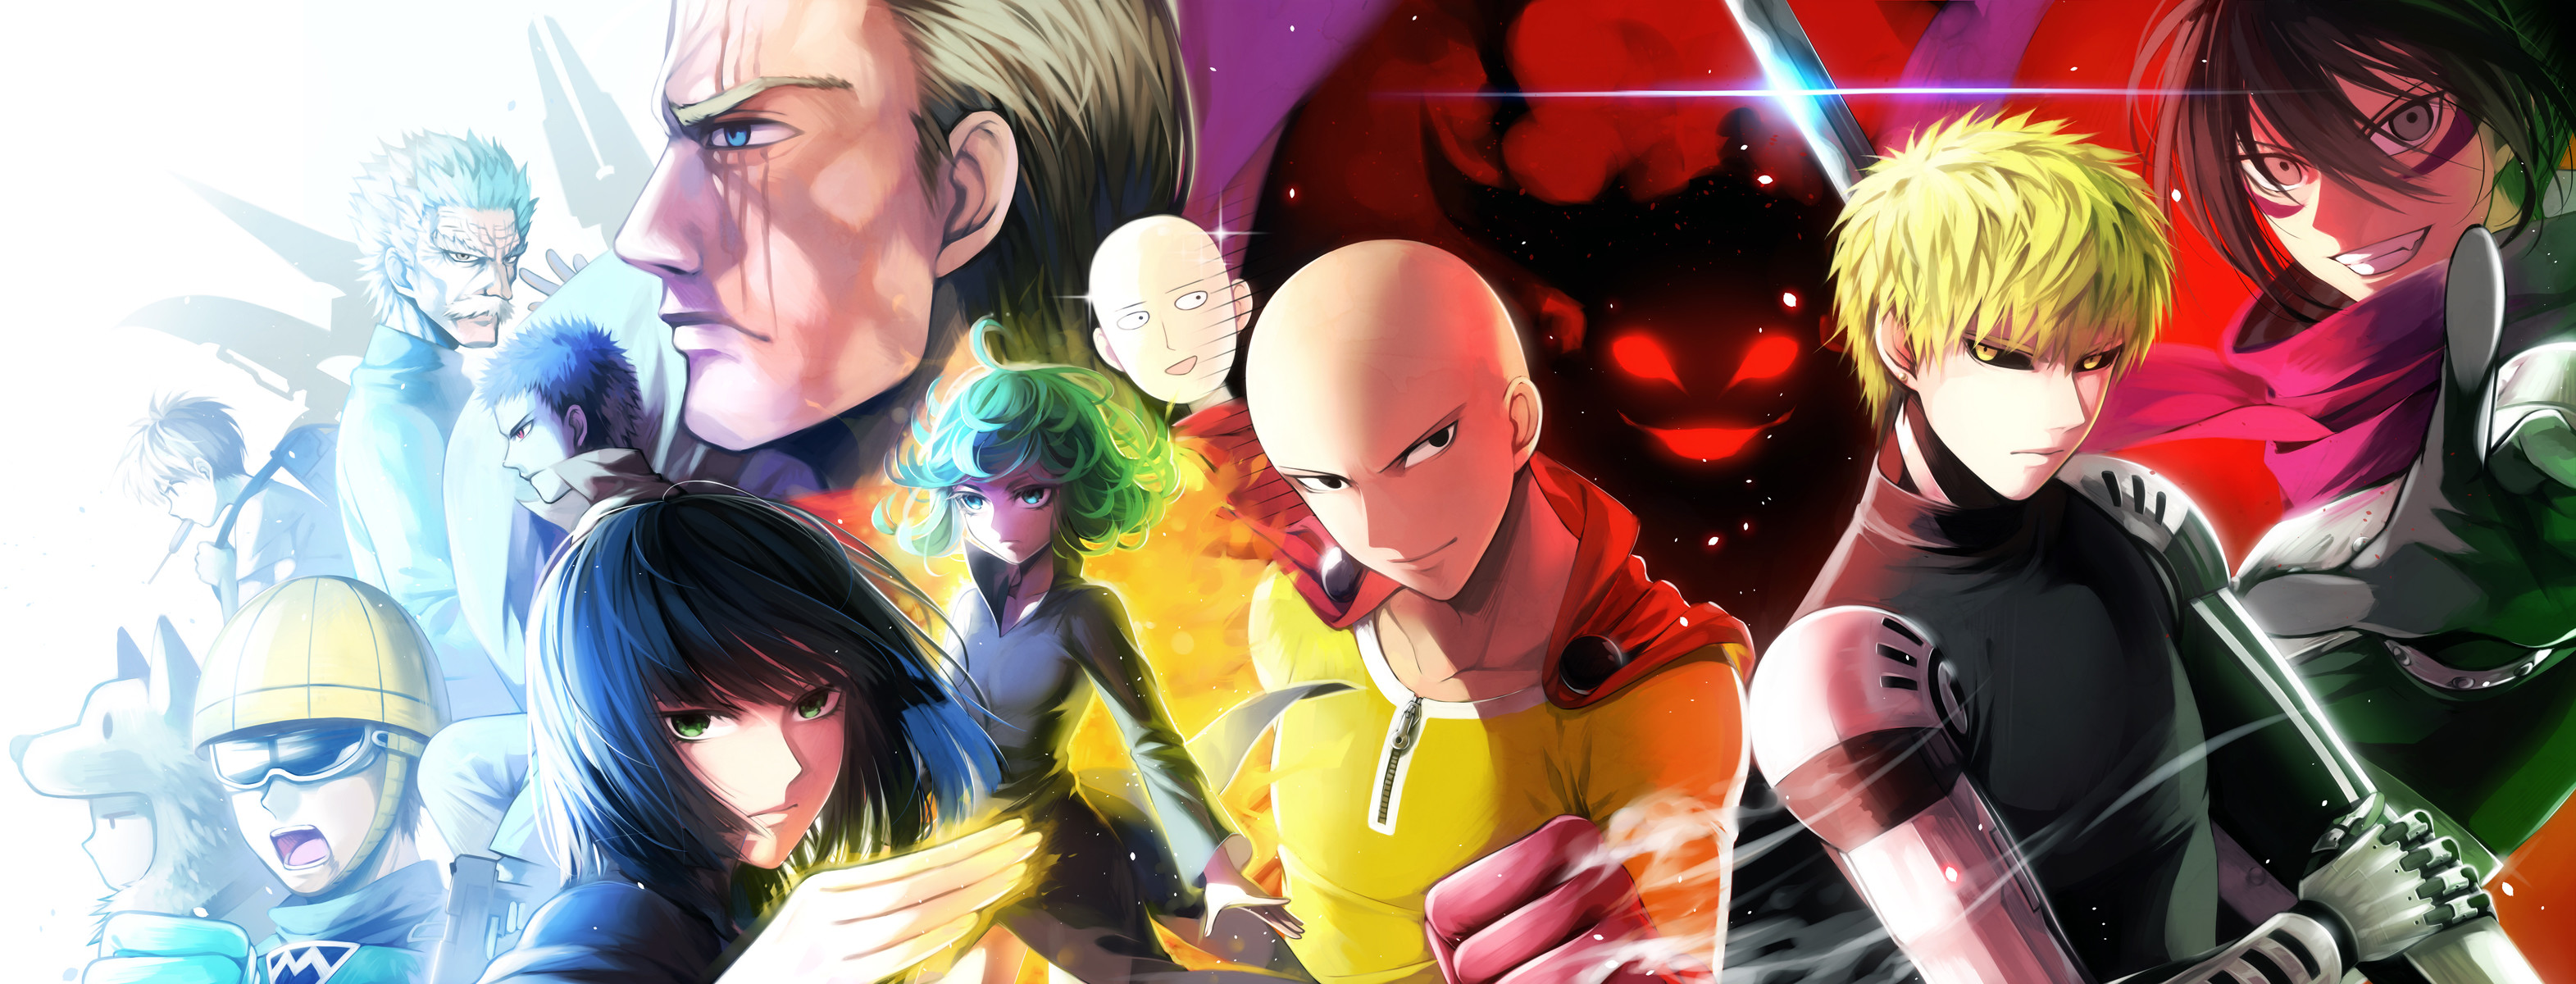 HD Wallpaper   Background ID:662808. Anime One-Punch Man